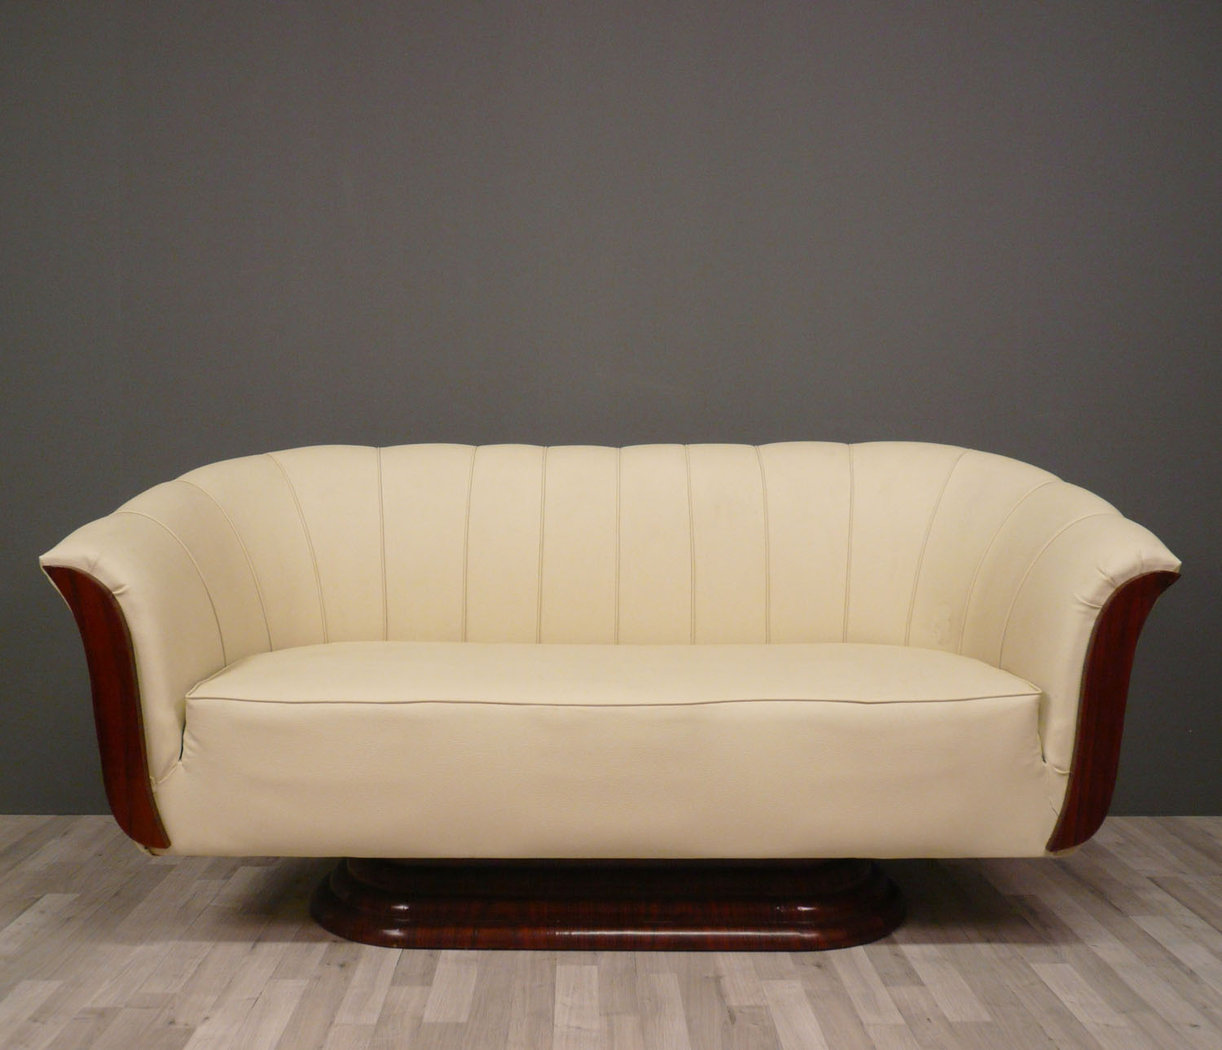 Art deco sofa art deco furniture for Divan furniture